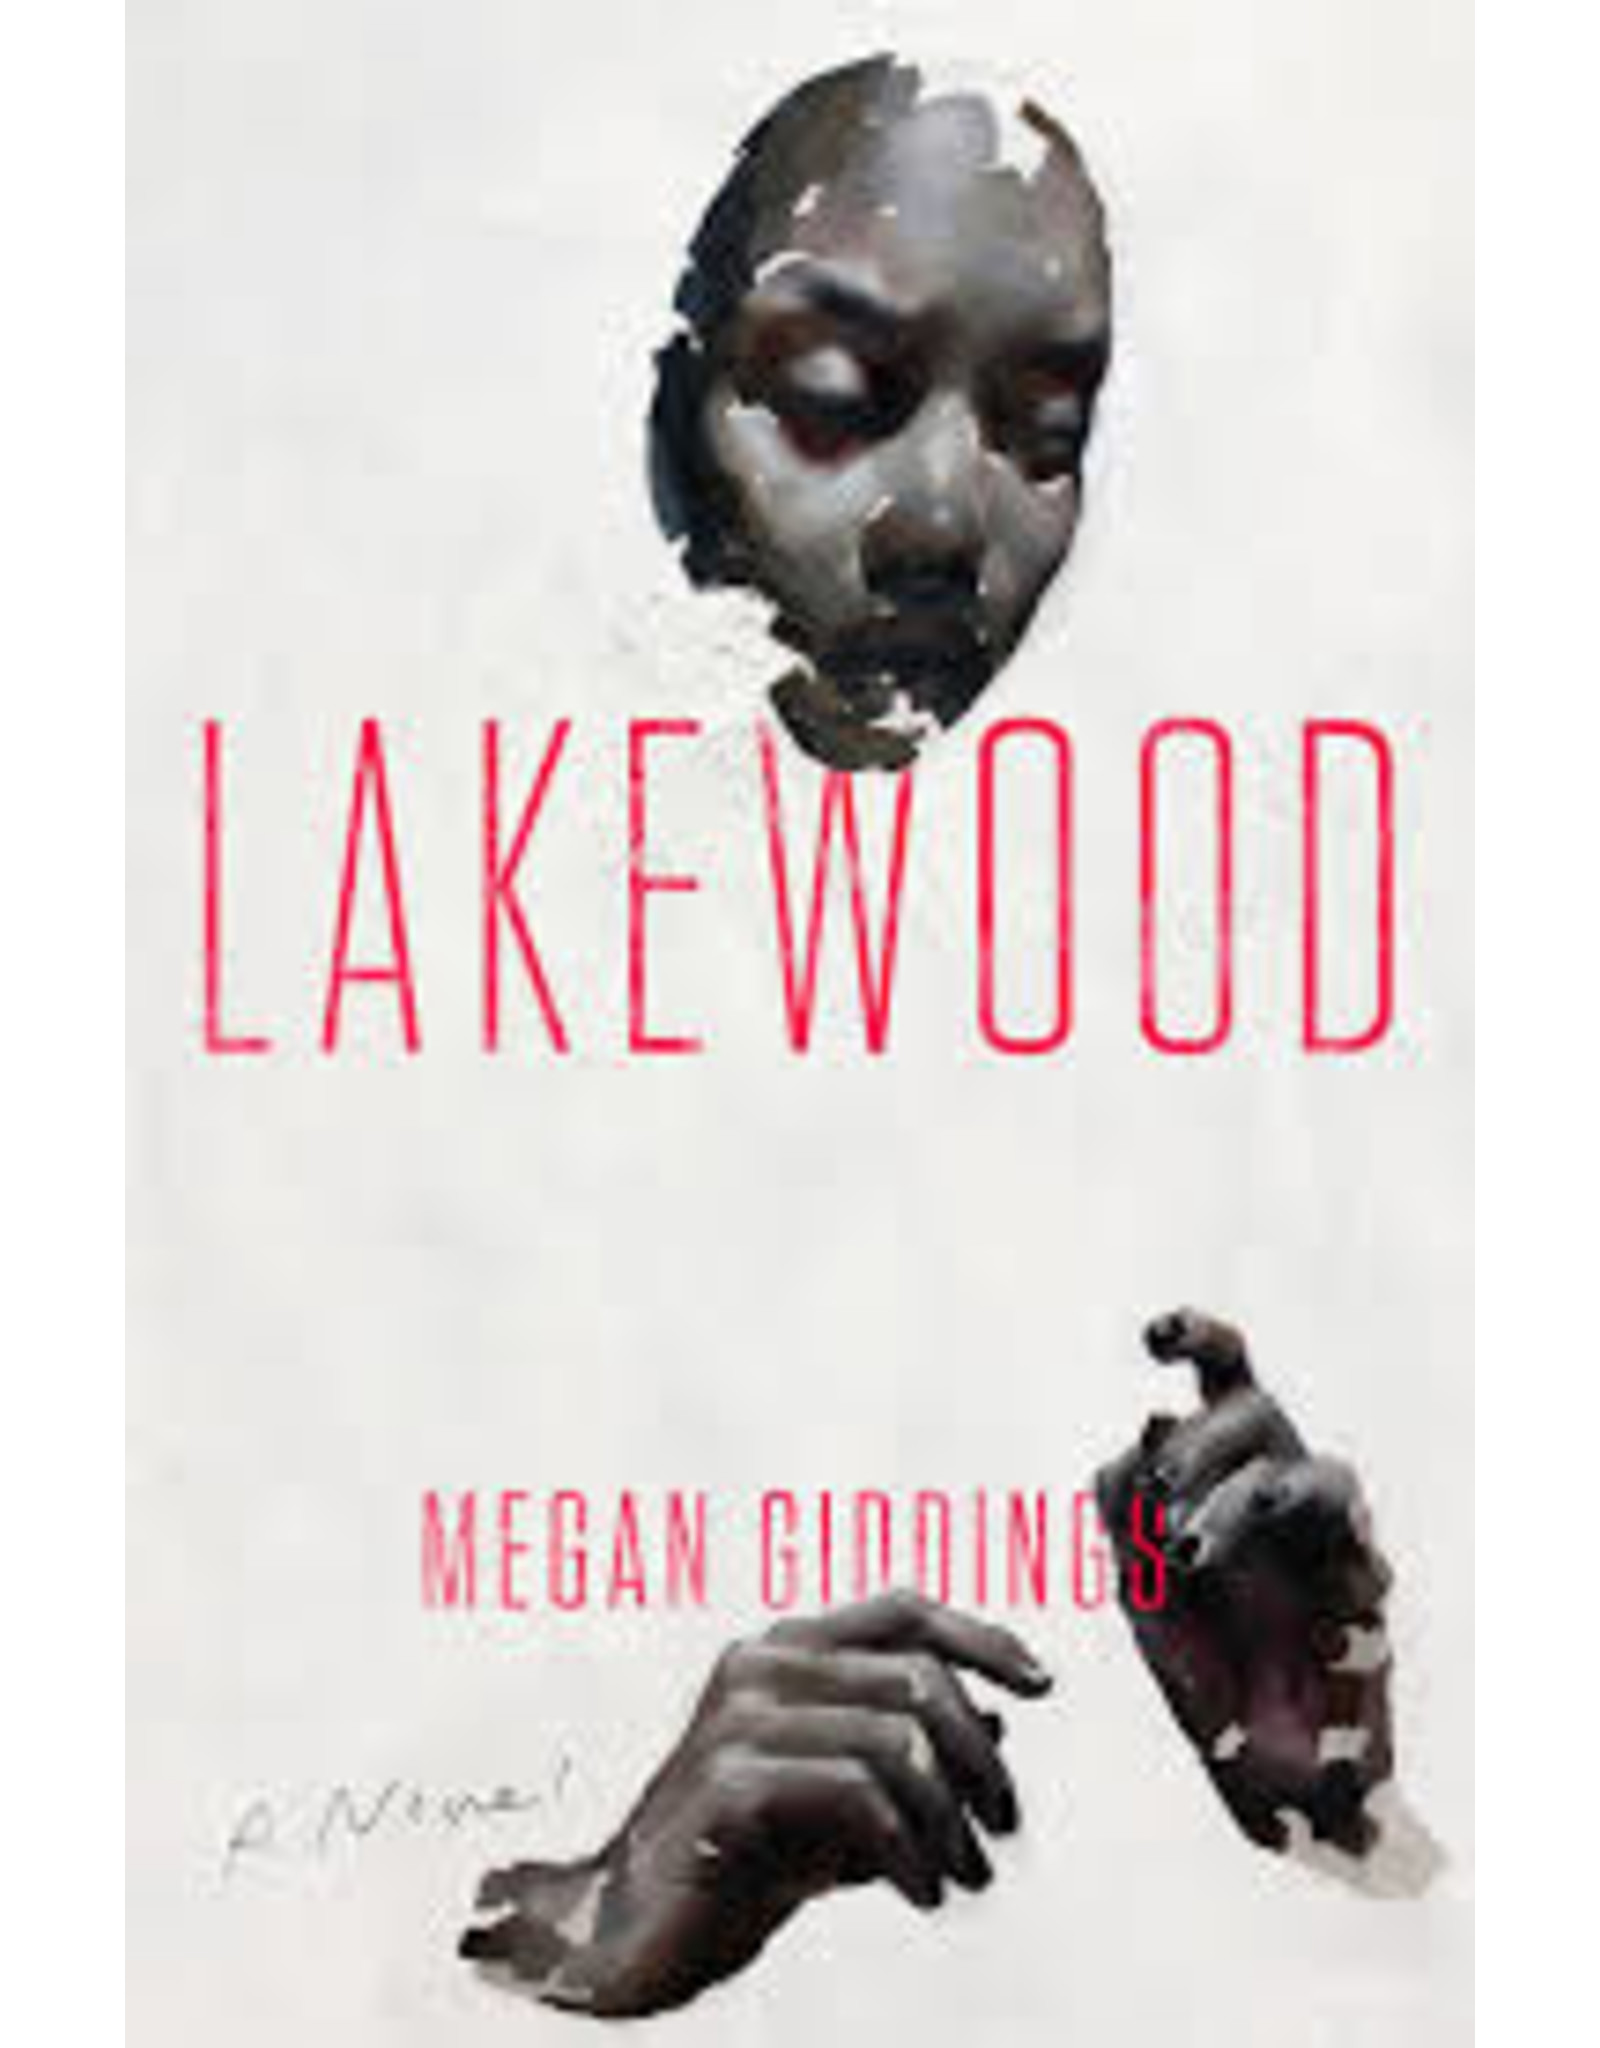 Books Lakewood by Megan Giddings